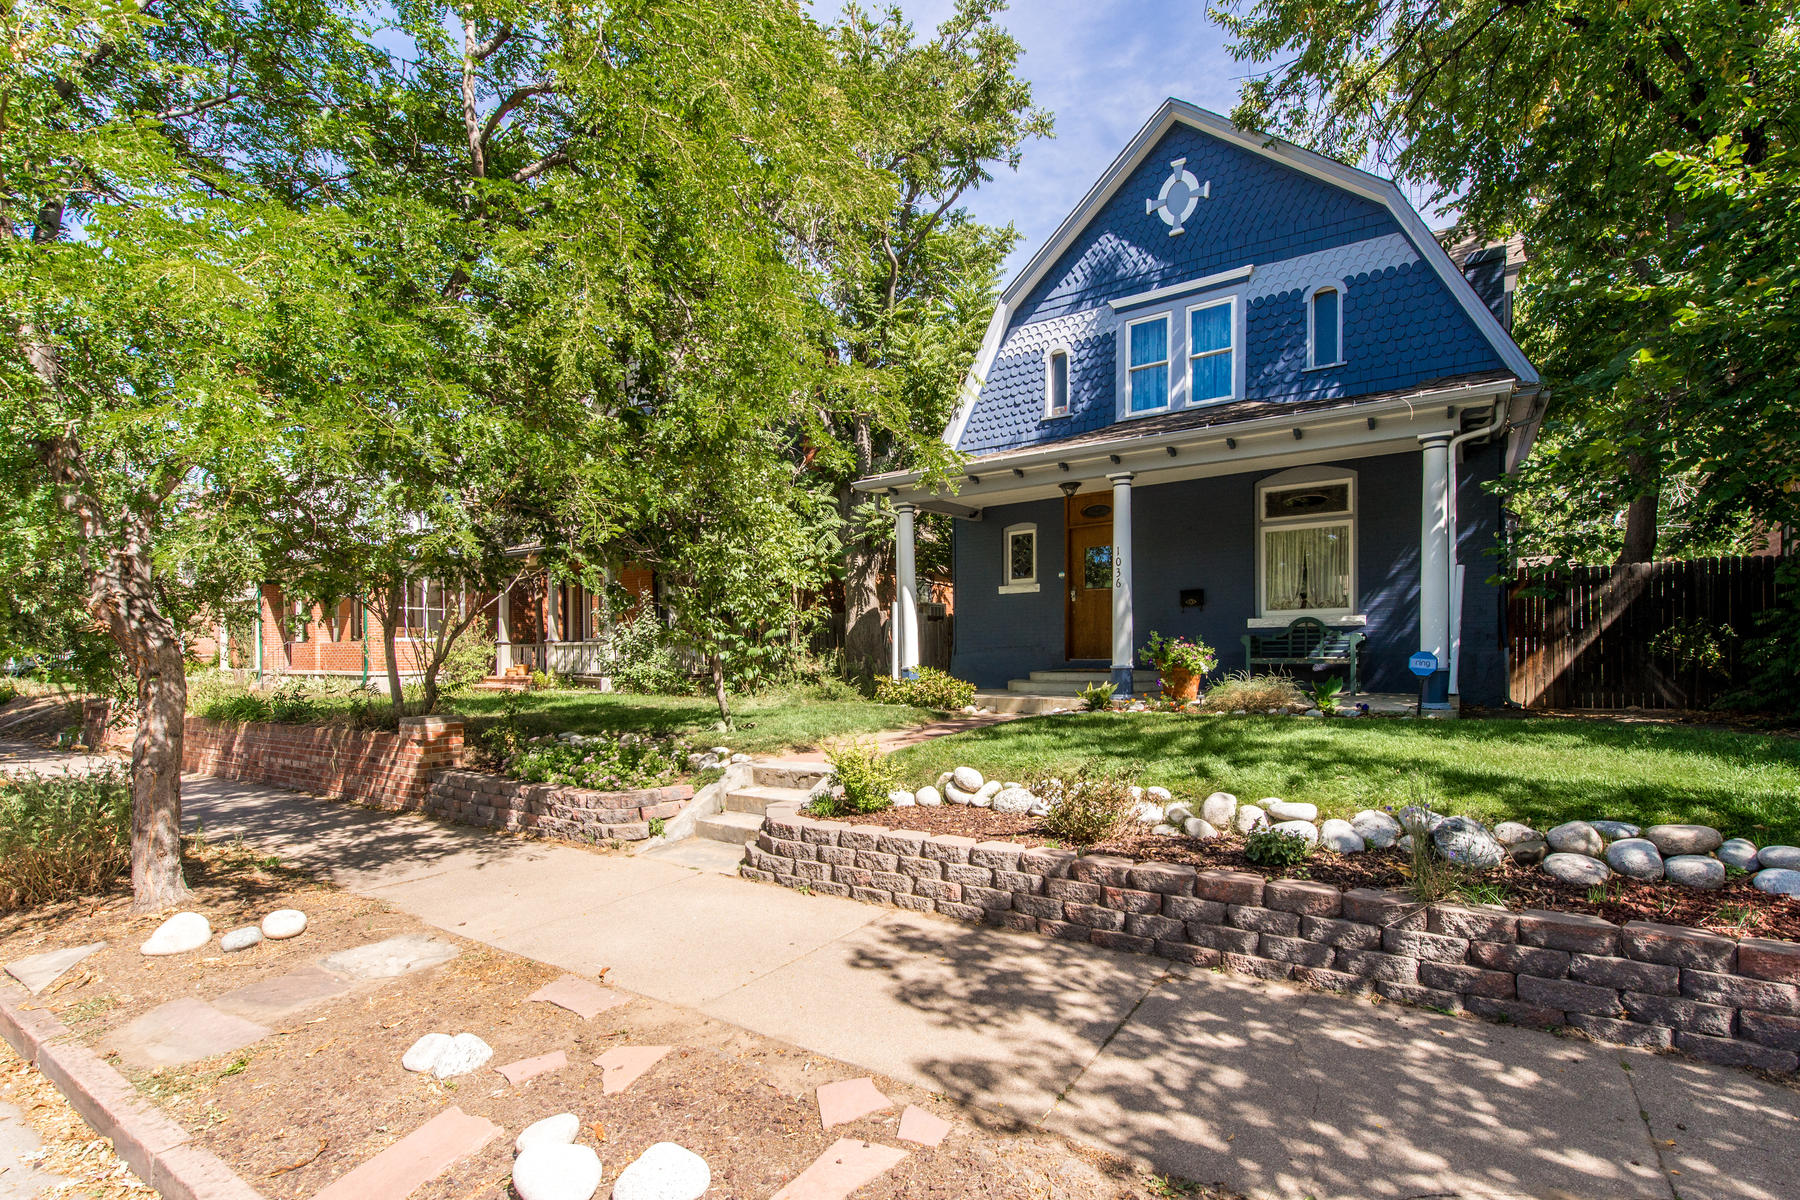 Property for Active at Turn Of The Century Victorian Charmer Perfectly Situated In Washington Park West 1036 South Pearl Street Denver, Colorado 80209 United States